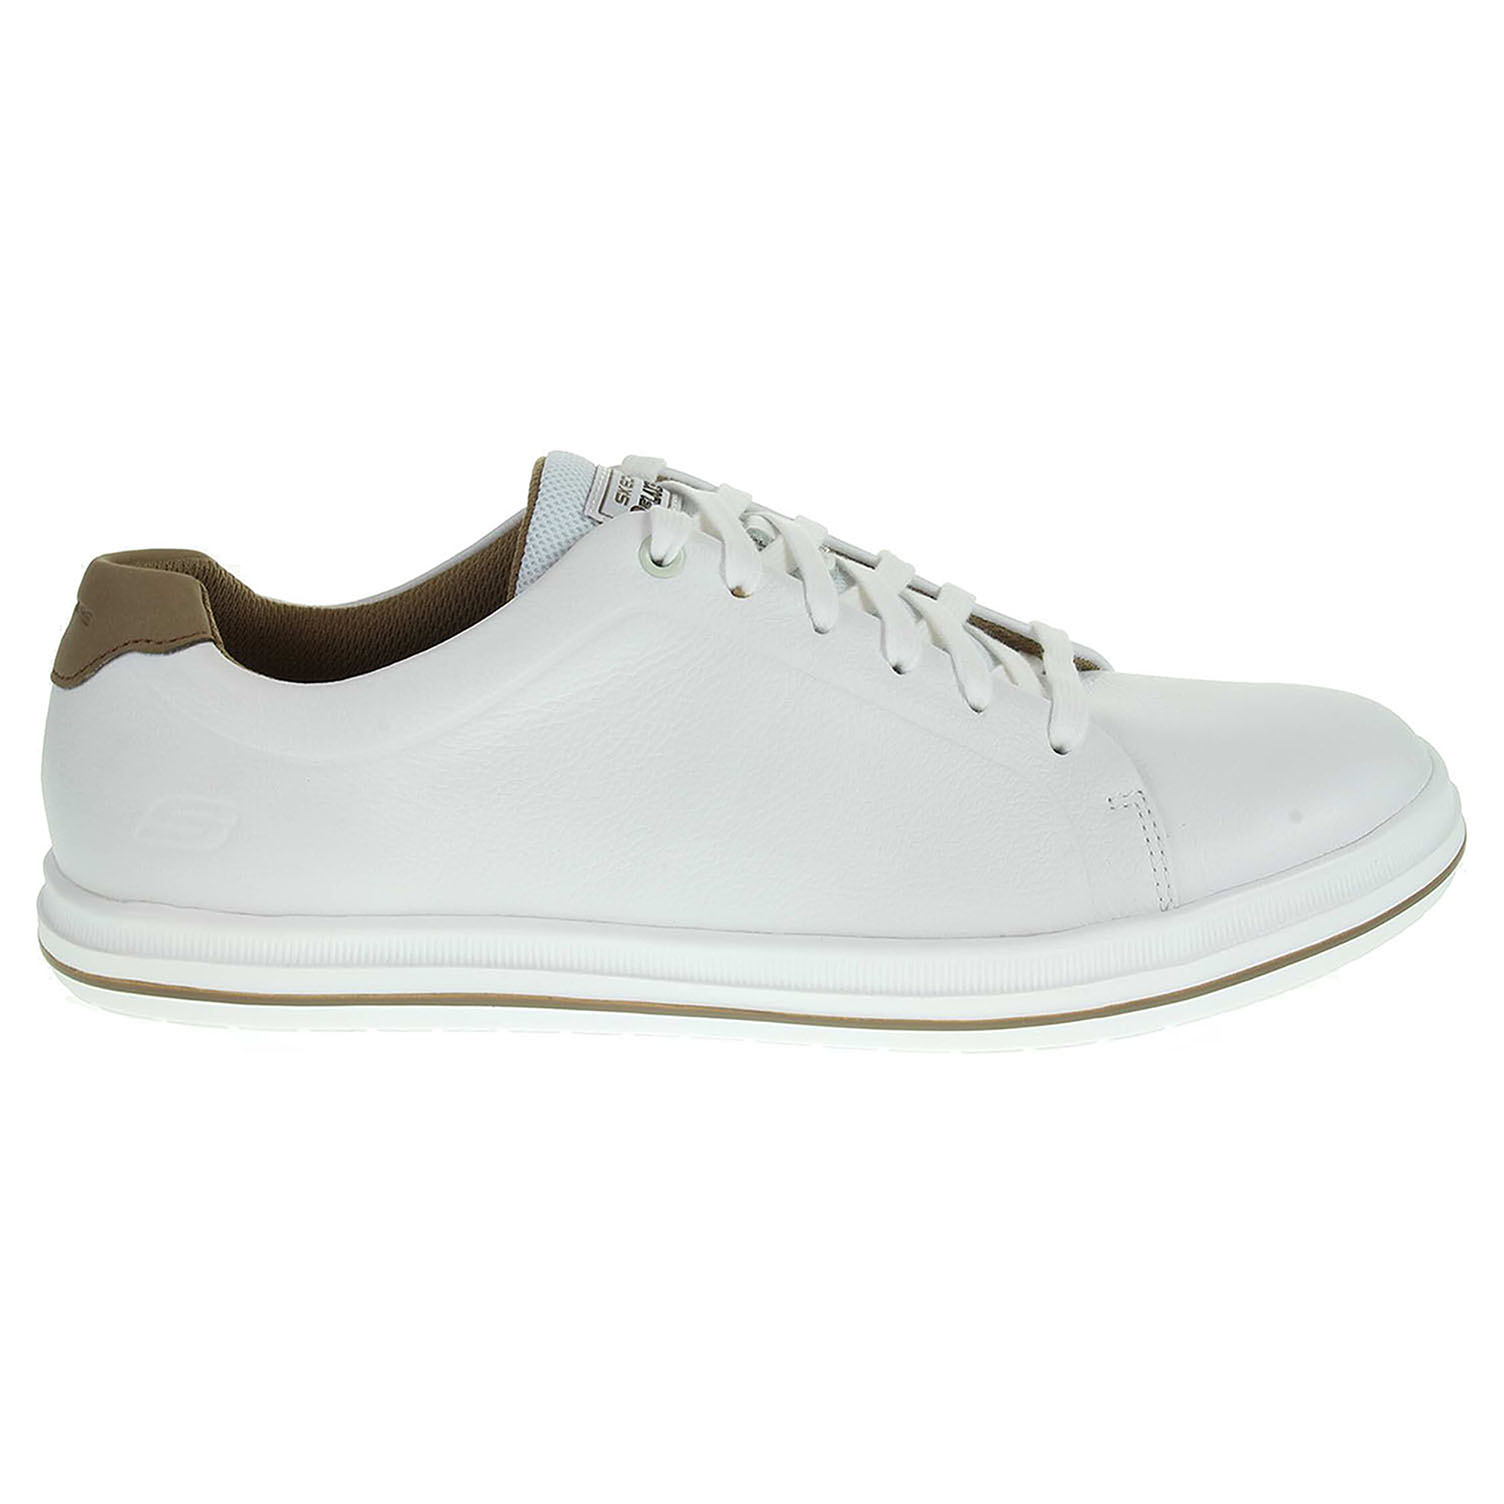 Skechers Gorio white